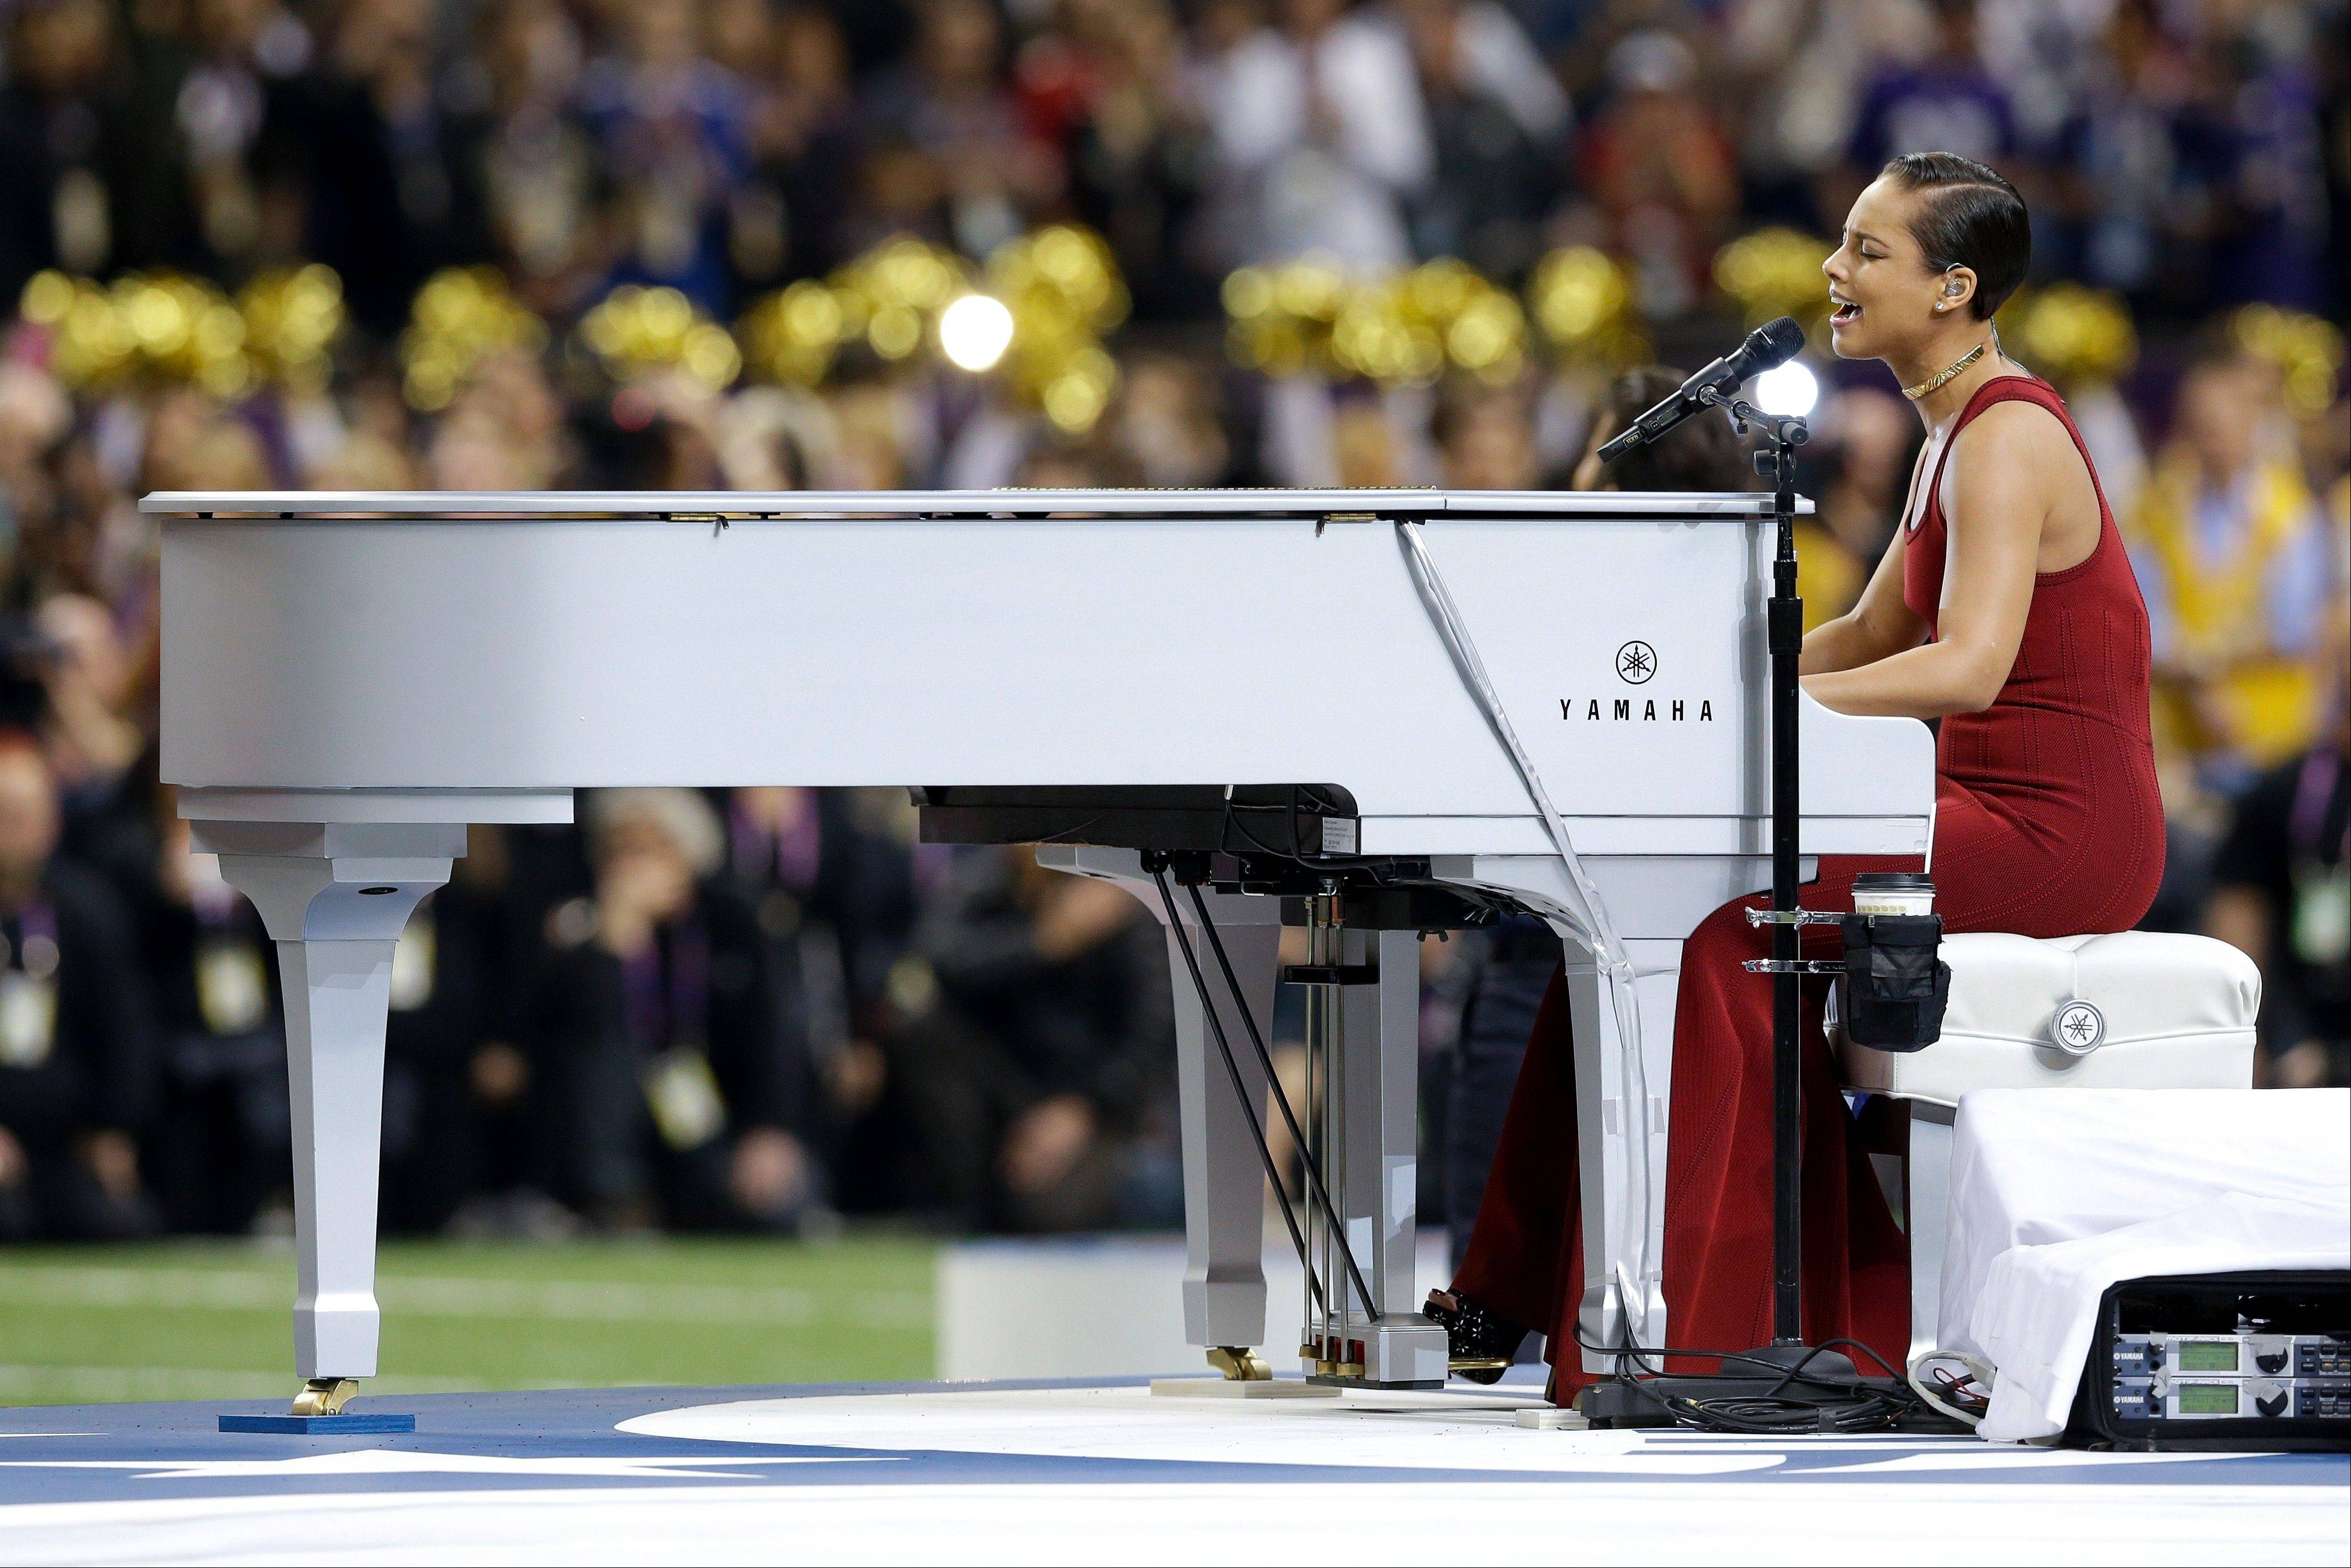 Alicia Keys delivers a stirring rendition of the national anthem before Super Bowl XLVII.